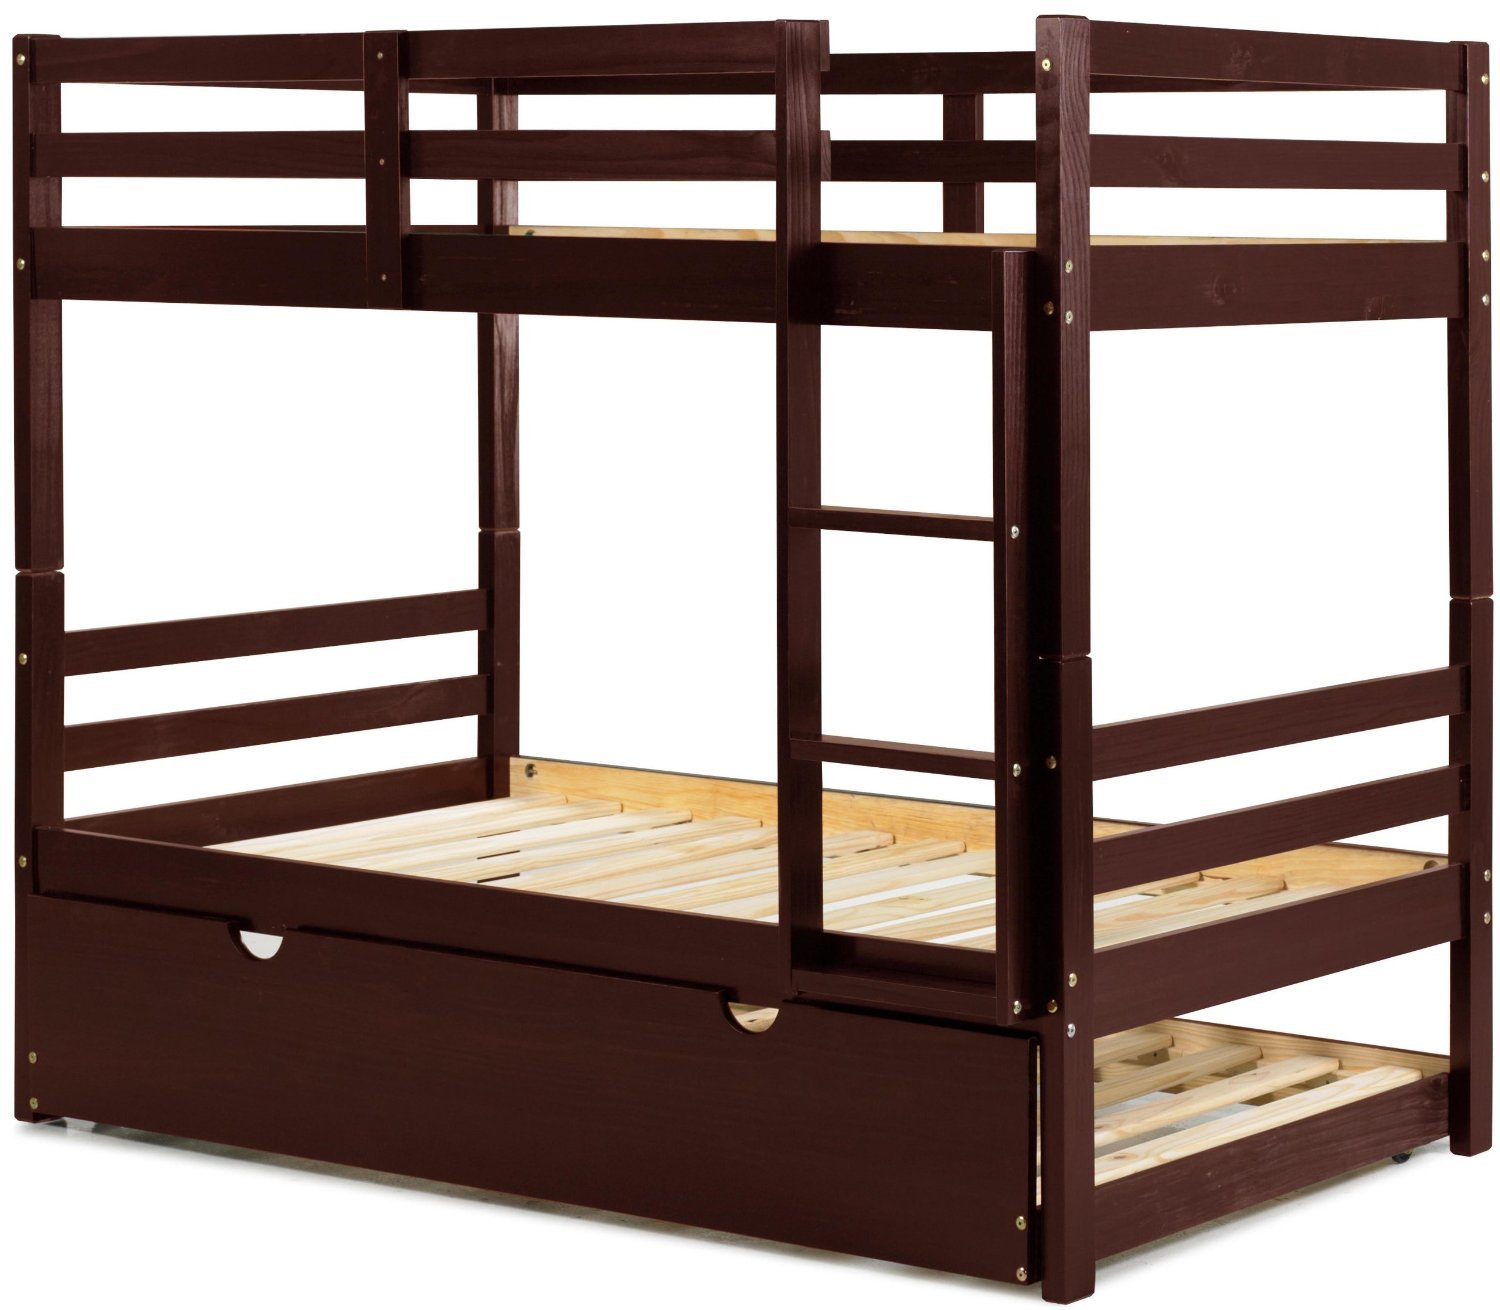 100 solid wood arizona twin twin bunk bed 8 slats for Twin bed frame under 100